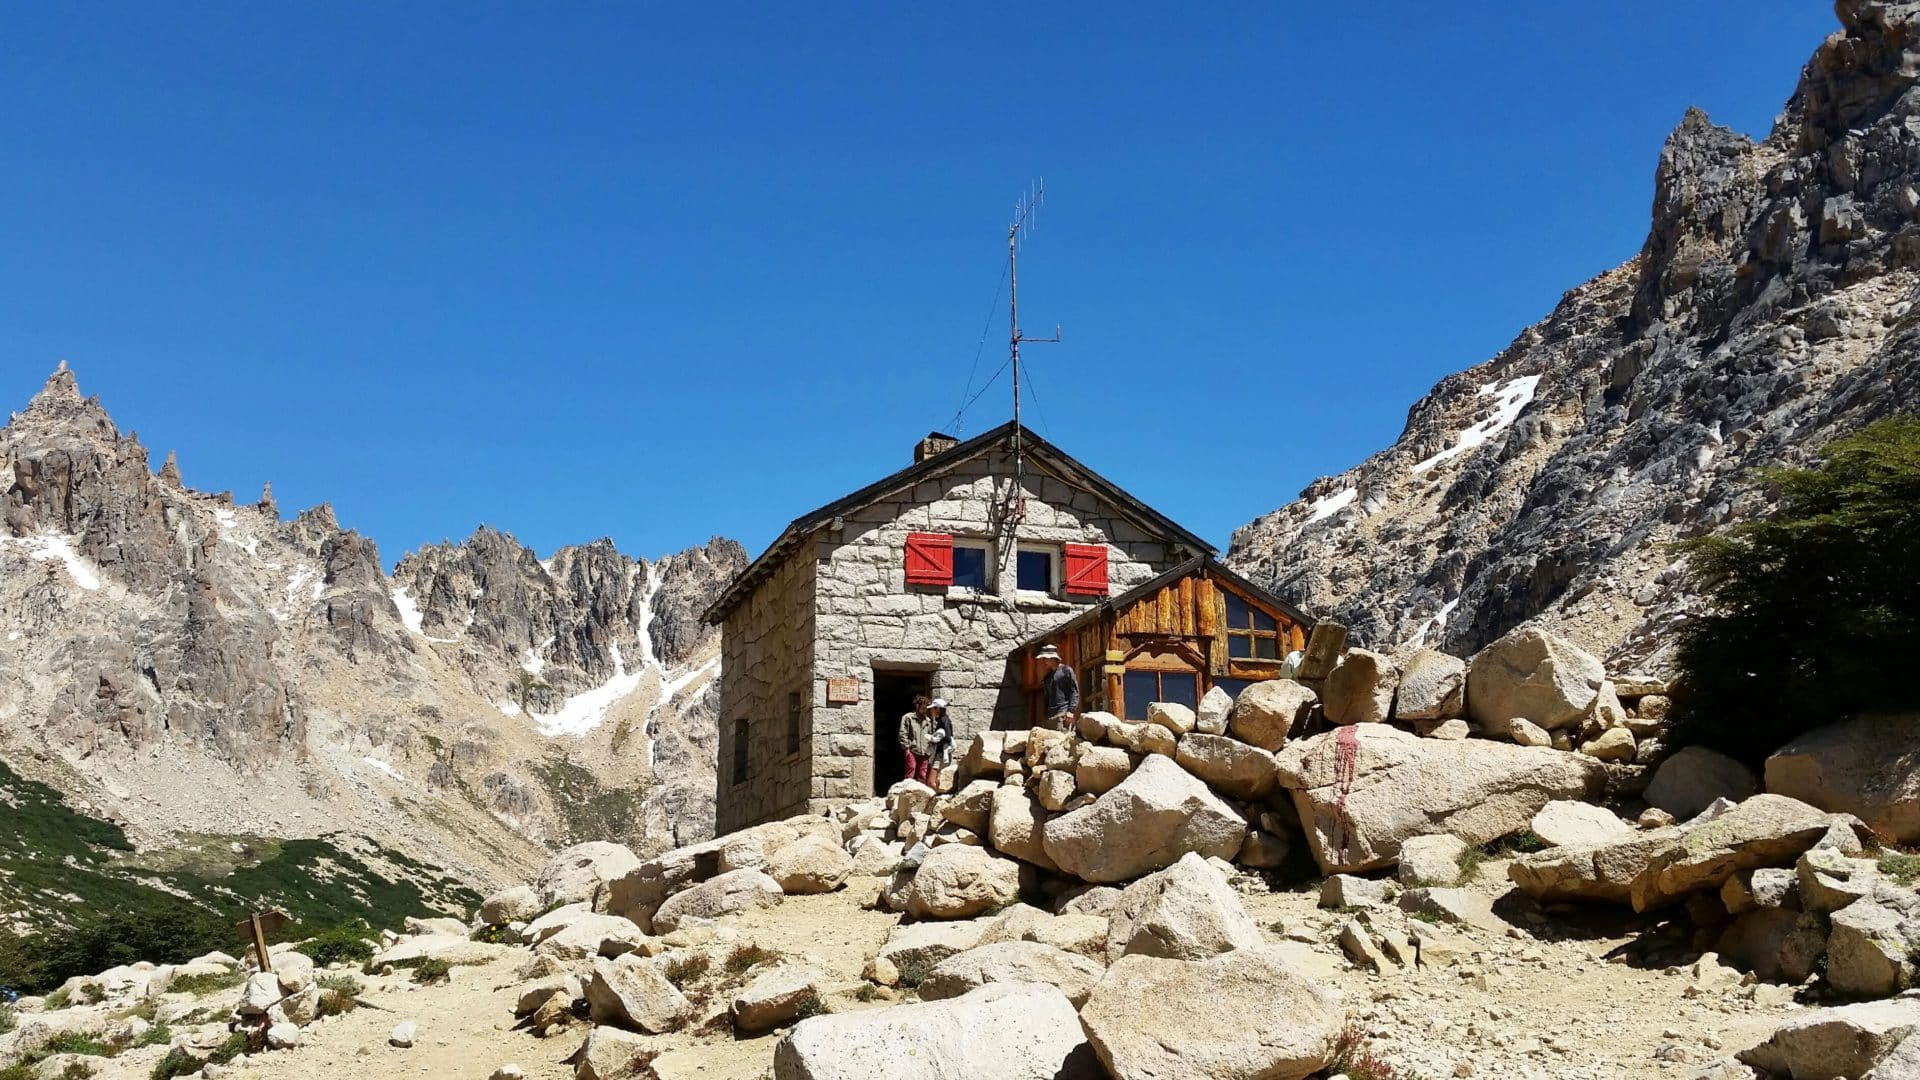 Multi-day trad climbing expedition around Frey Hut